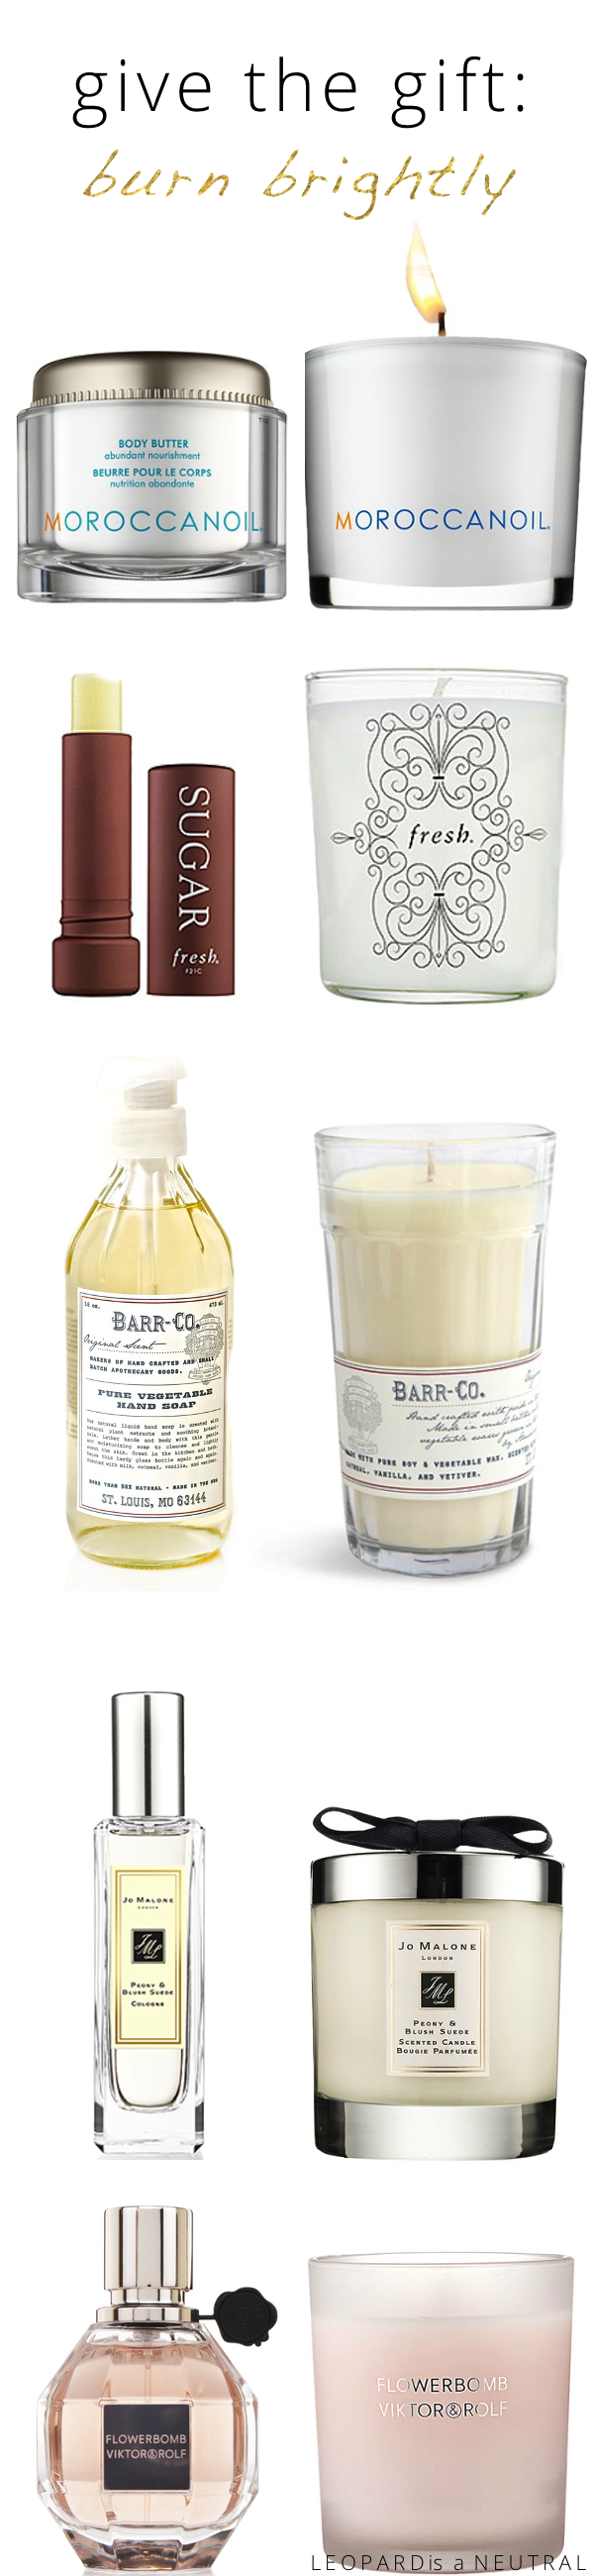 Holiday Gift Guide 2013 - Alternatives to Soap and Perfume